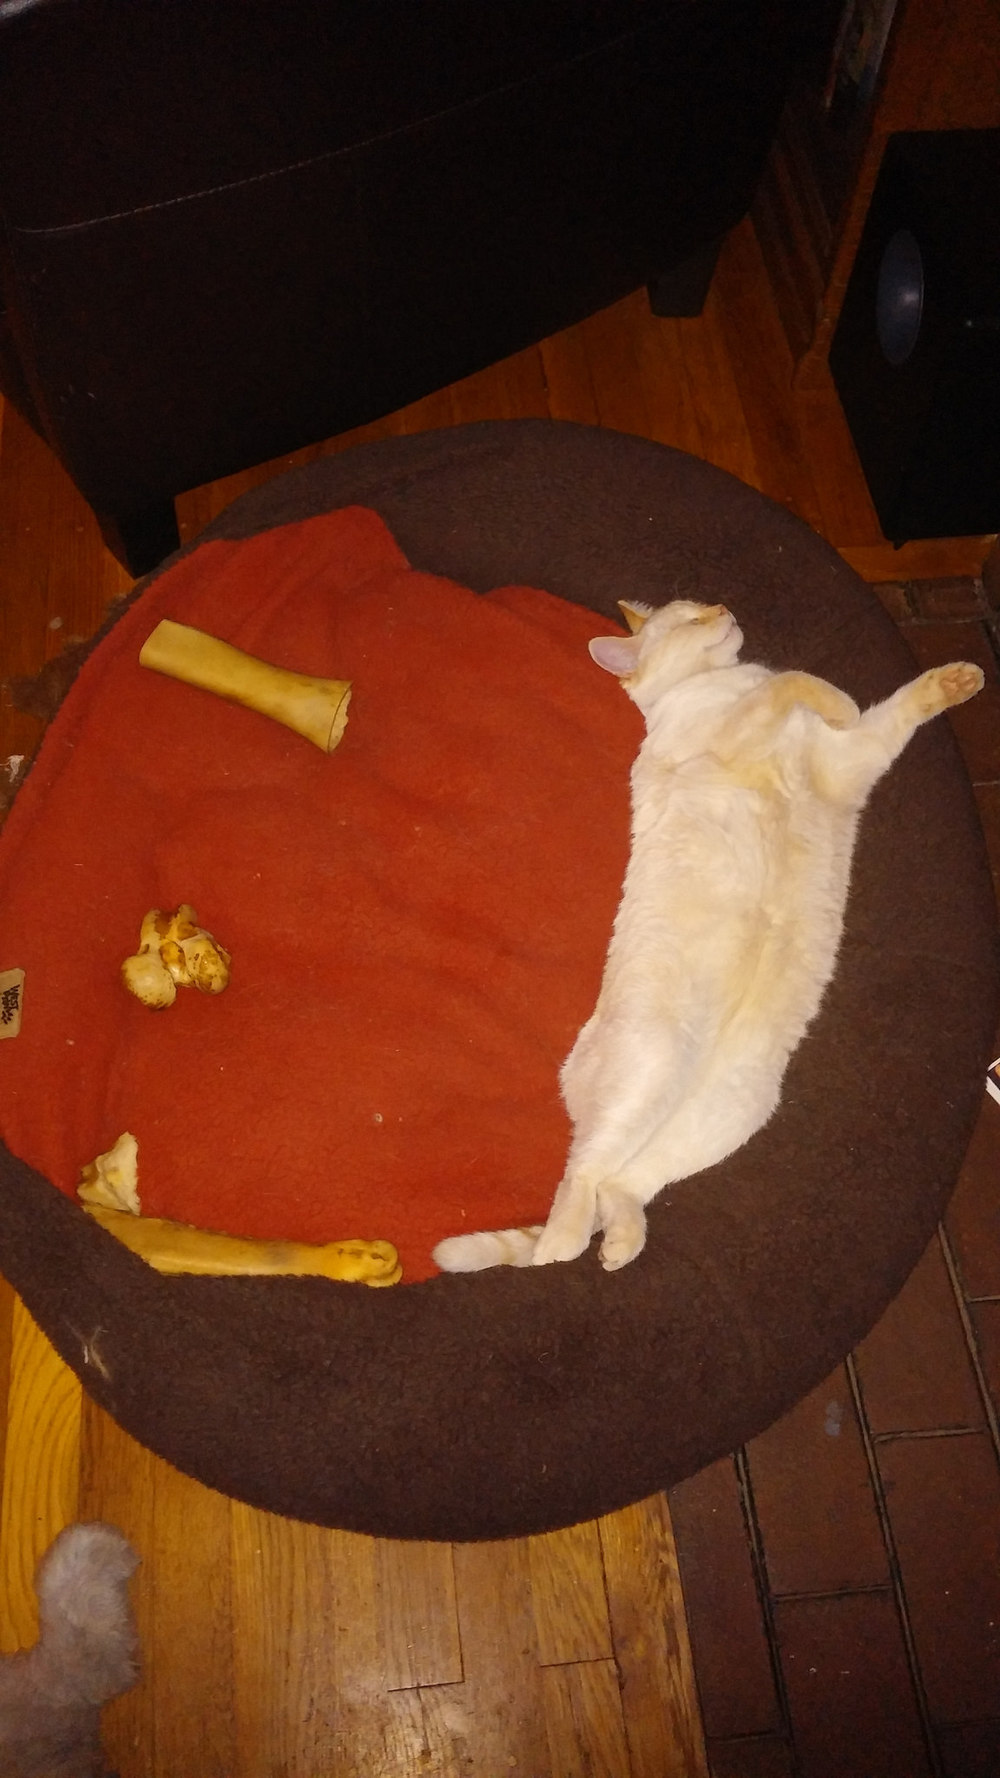 Then I laid down in the dog's bed with all the bones and pretended to be dead. (Cats are weird.)